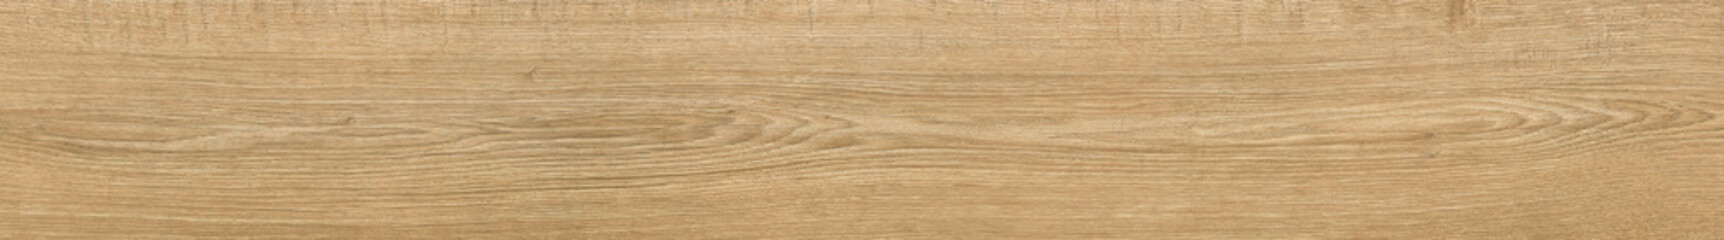 Wood pattern and texture background wood rug and natural wood background and pattern texture Fotomurales